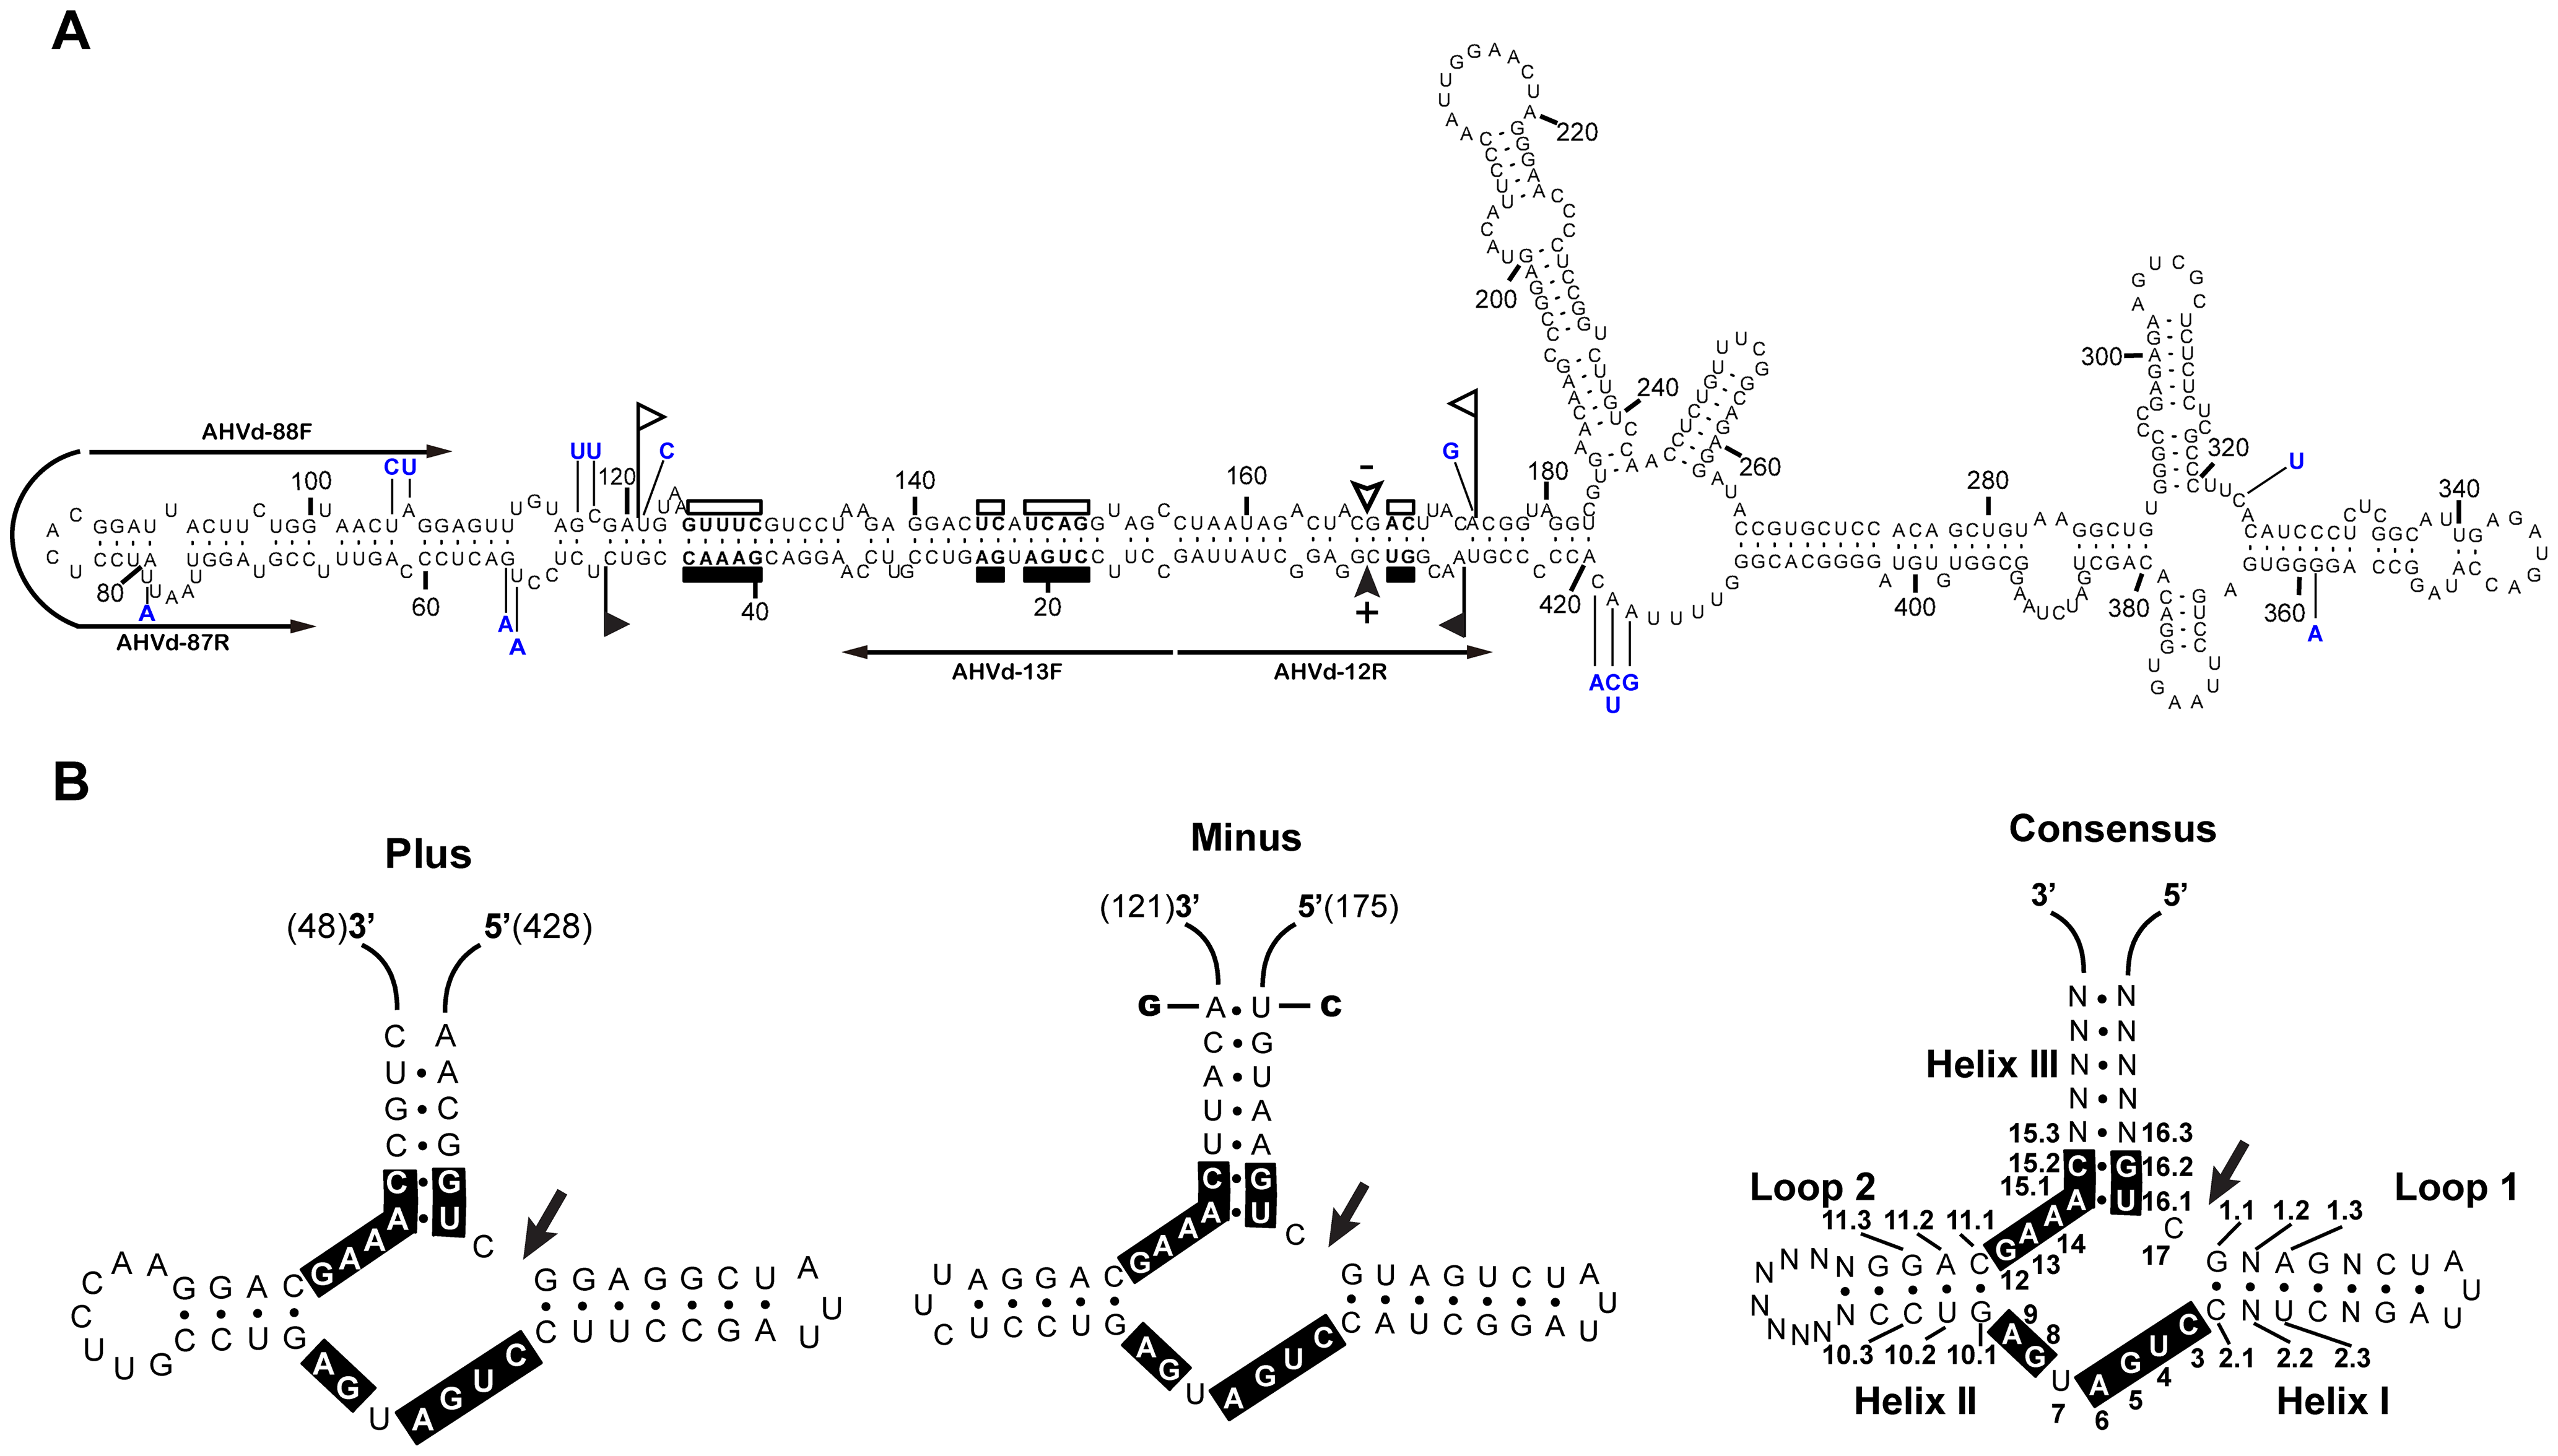 Primary and proposed secondary structures with minimum free energy for AHVd-like RNA.